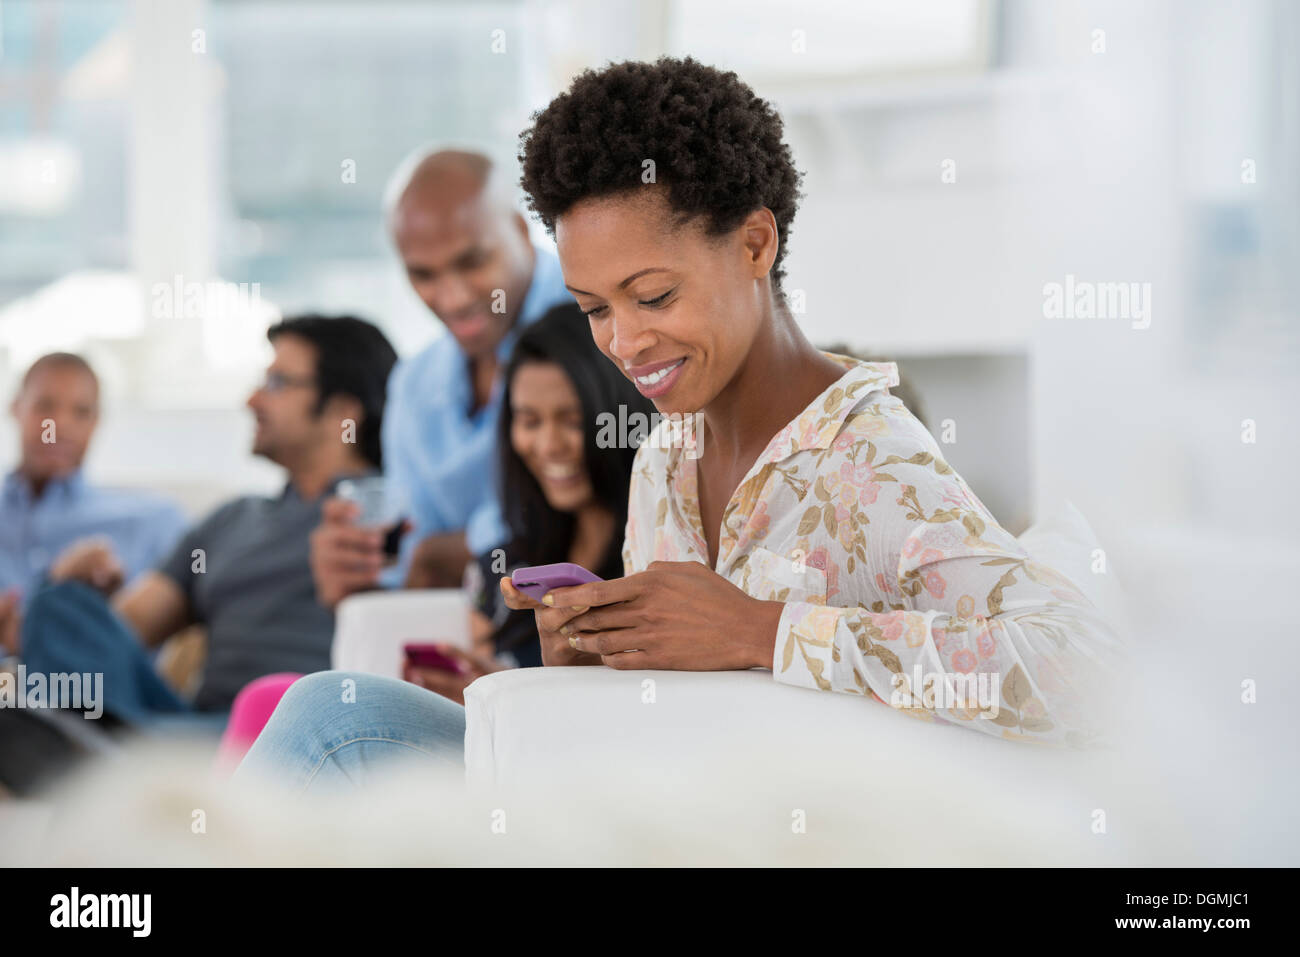 office event. A woman checking her smart phone. - Stock Image